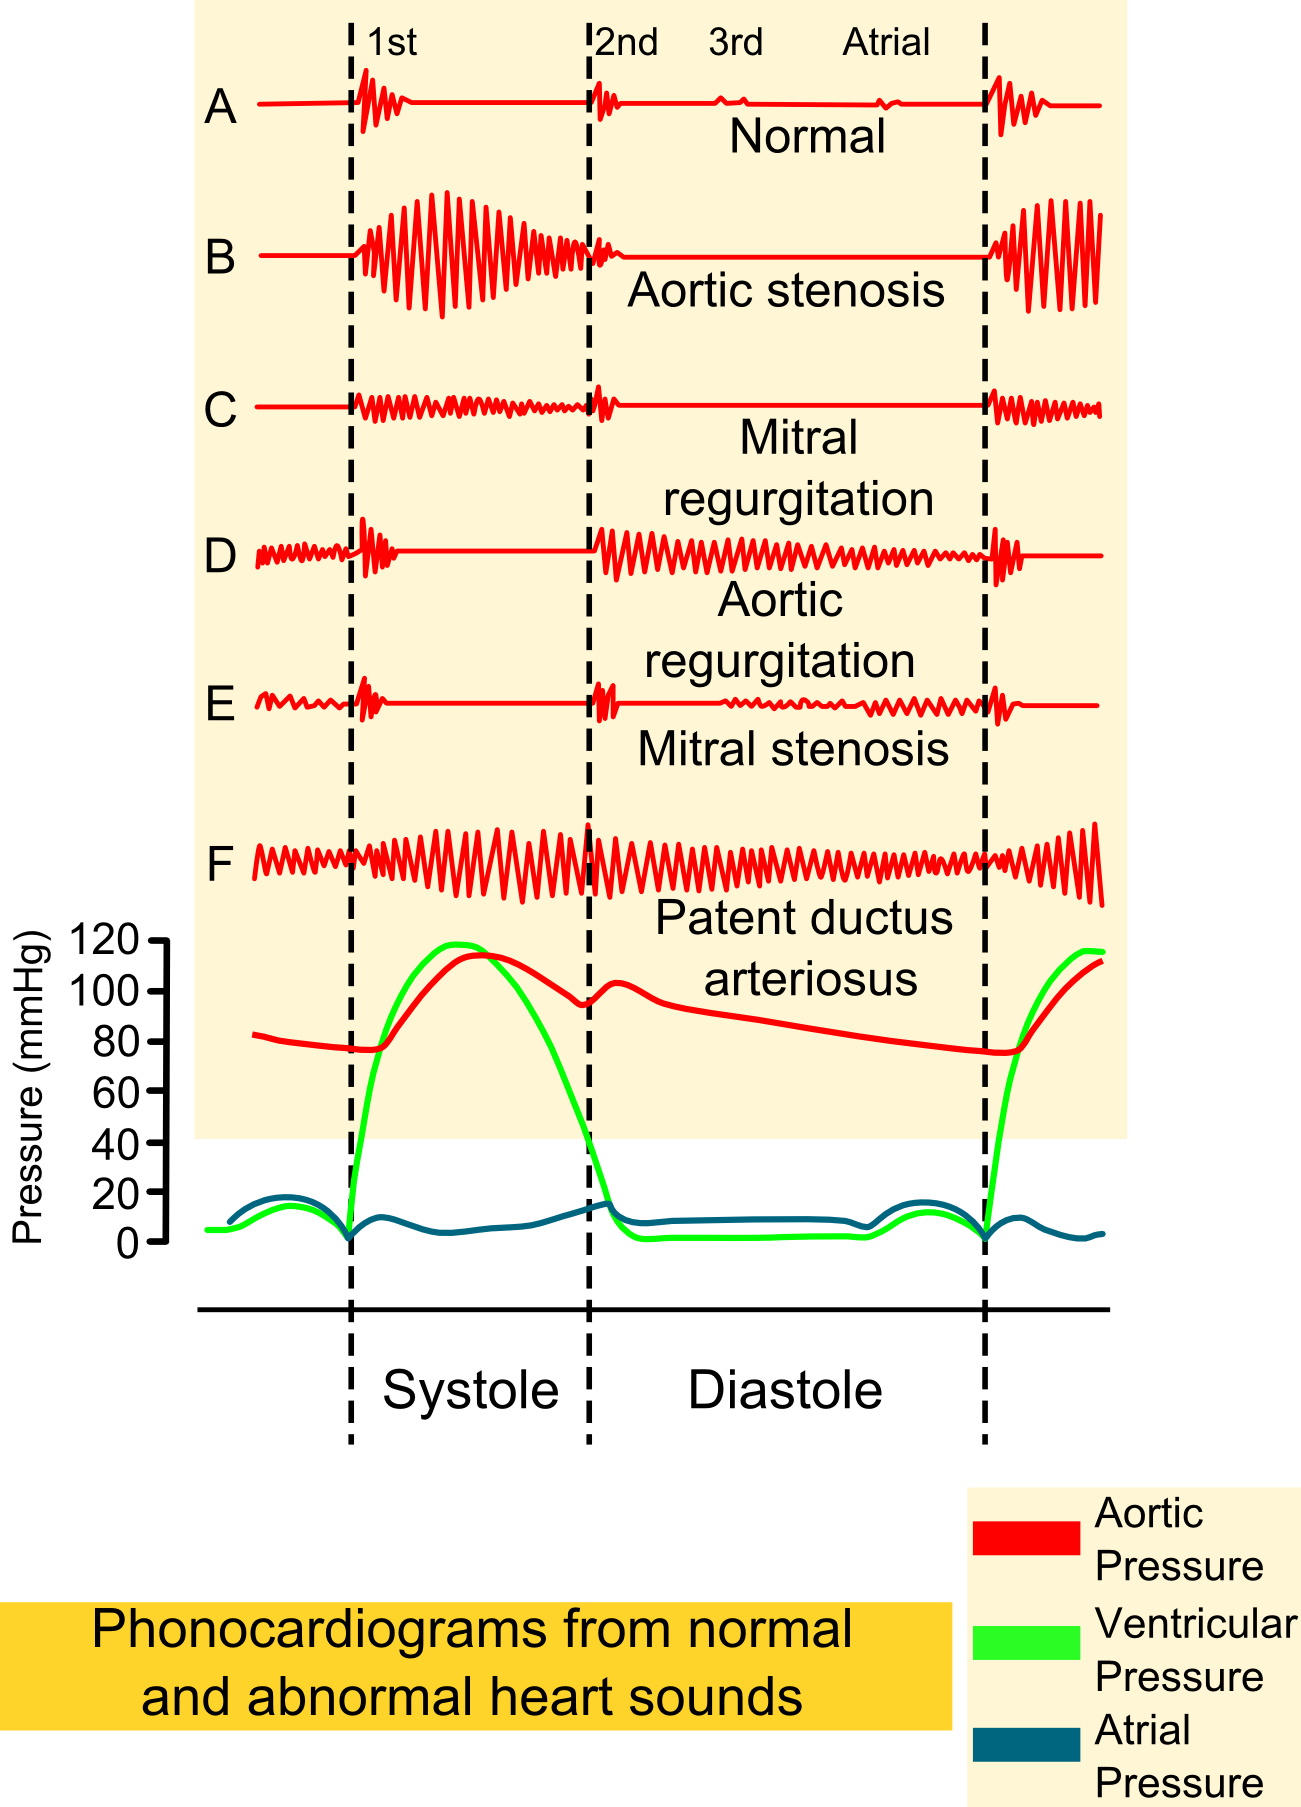 Phonocardiograms_from_normal_and_abnormal_heart_sounds_with_pressure_diagrams